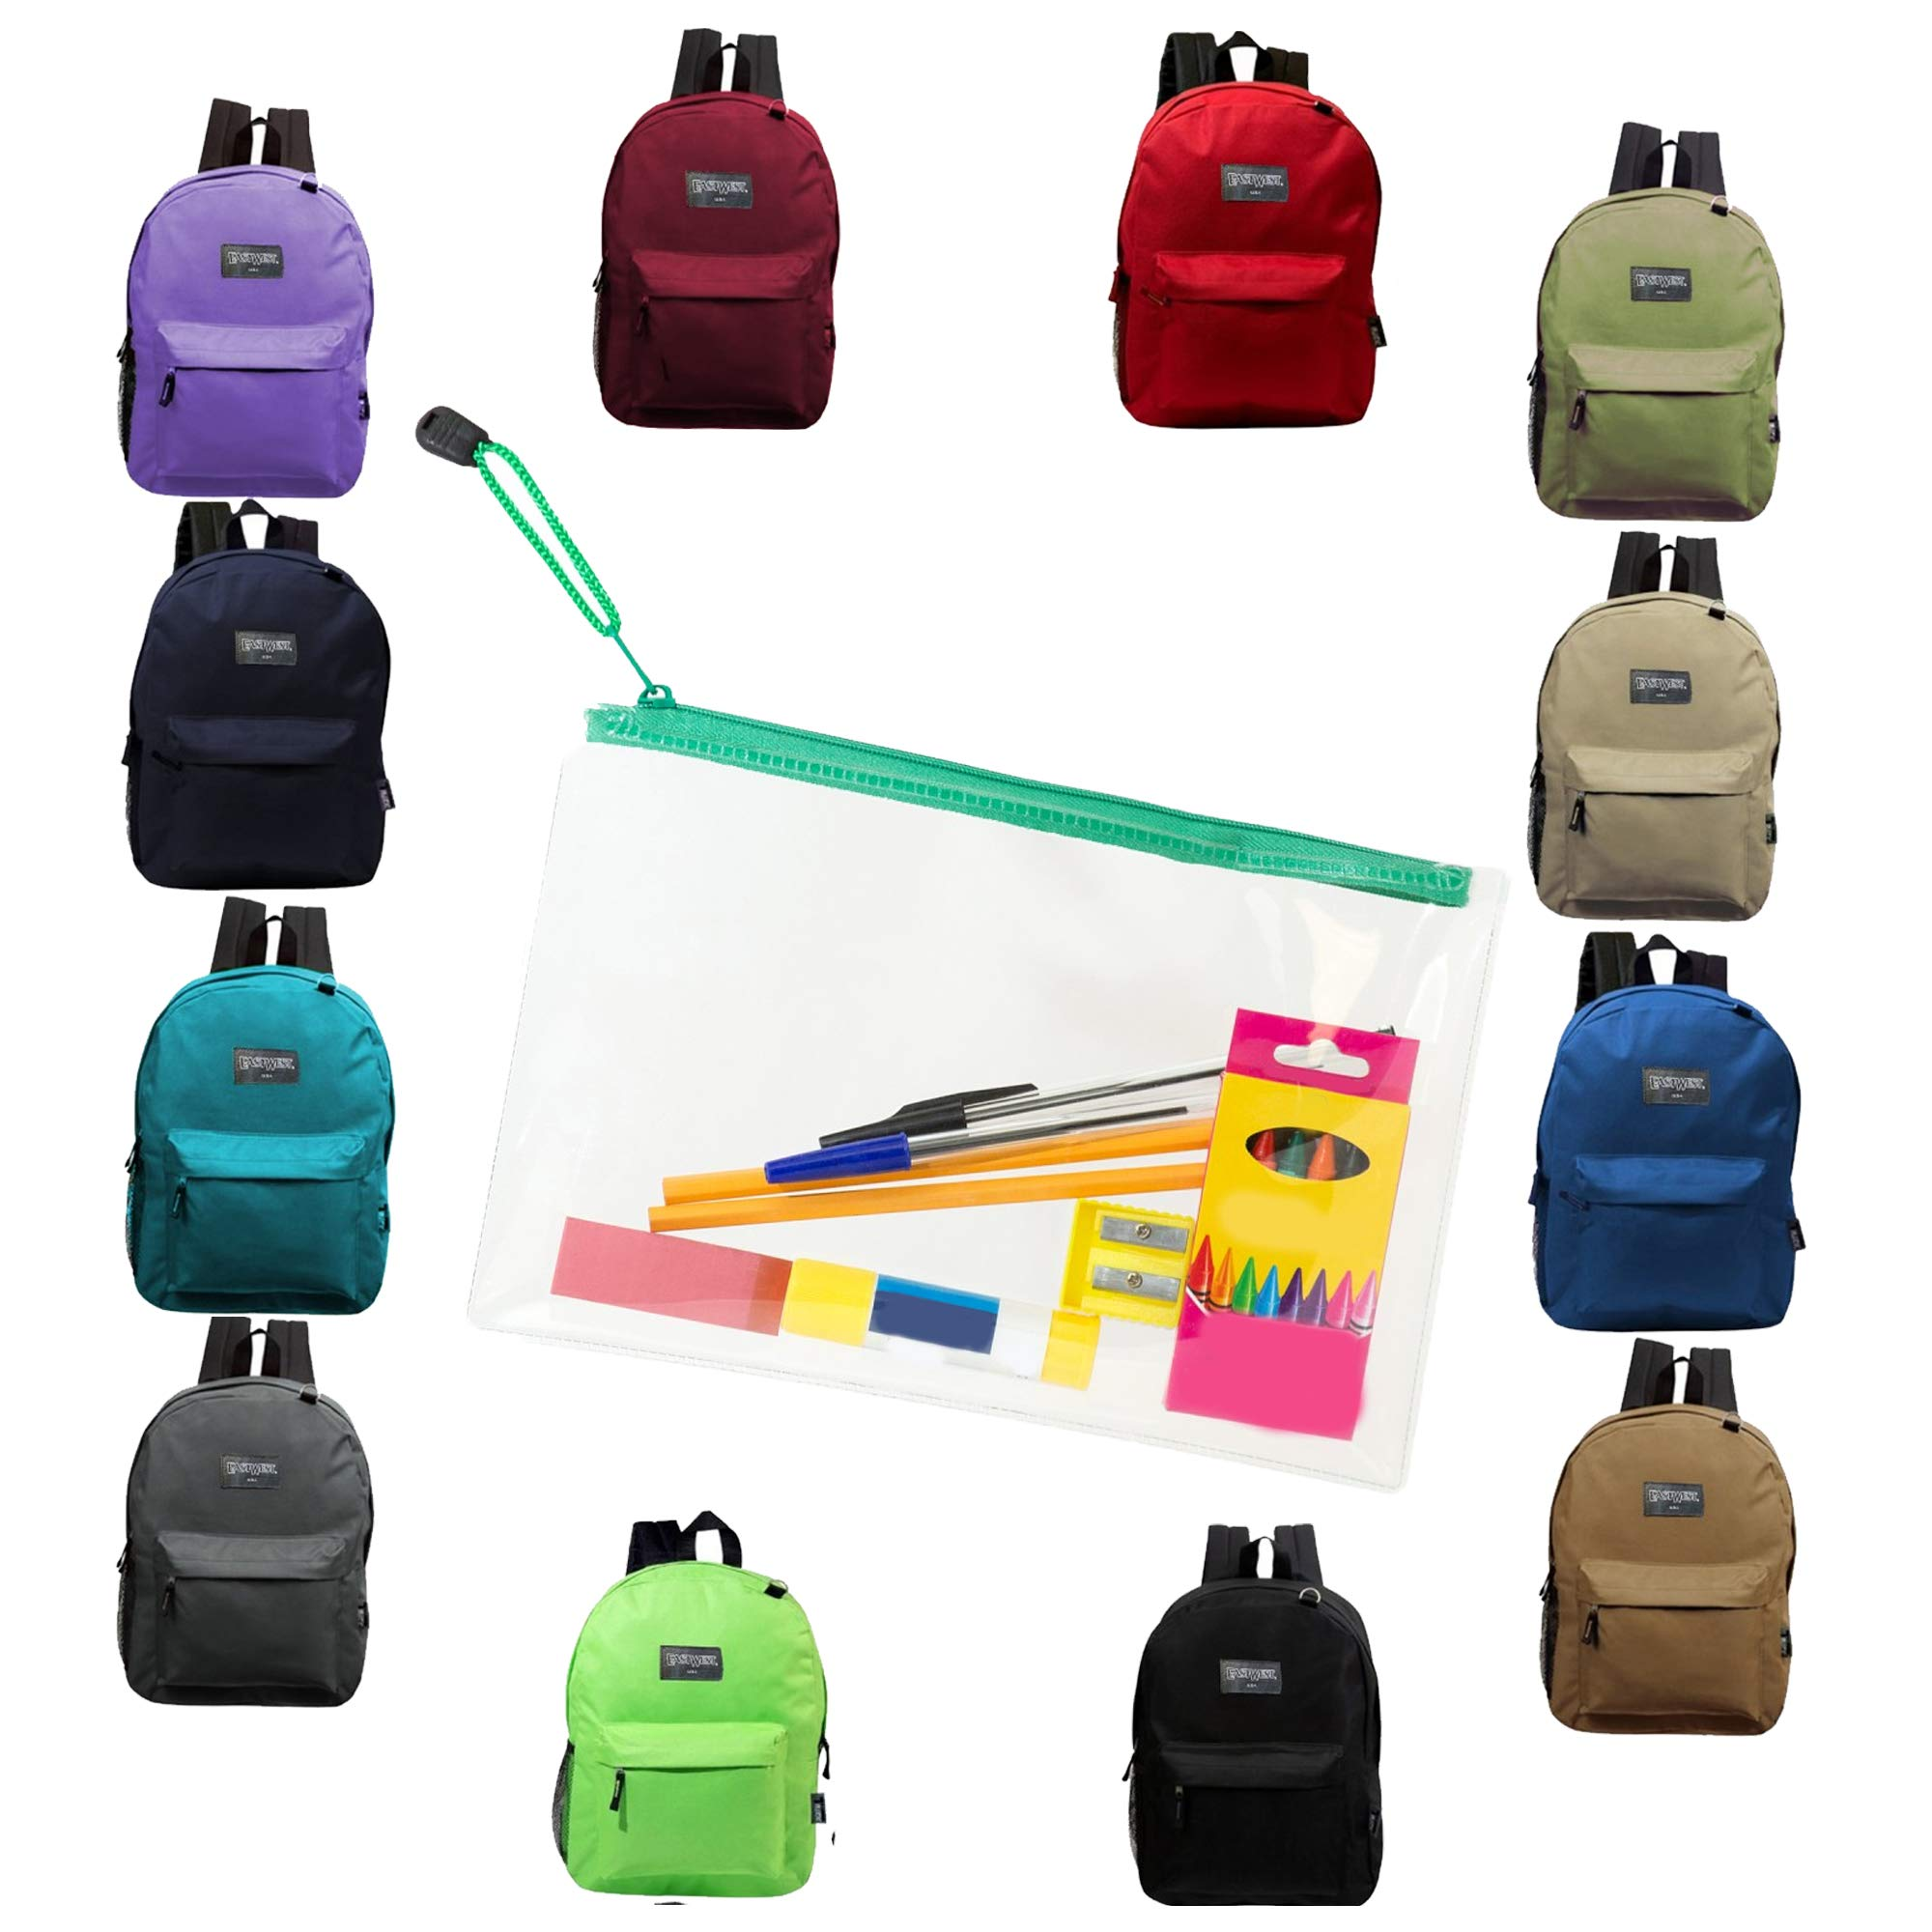 17 Inch Wholesale Backpacks in Assorted Colors with 12 Piece School Supply Kits Bulk Case of 24 (12 Color Assortment) by Moda West